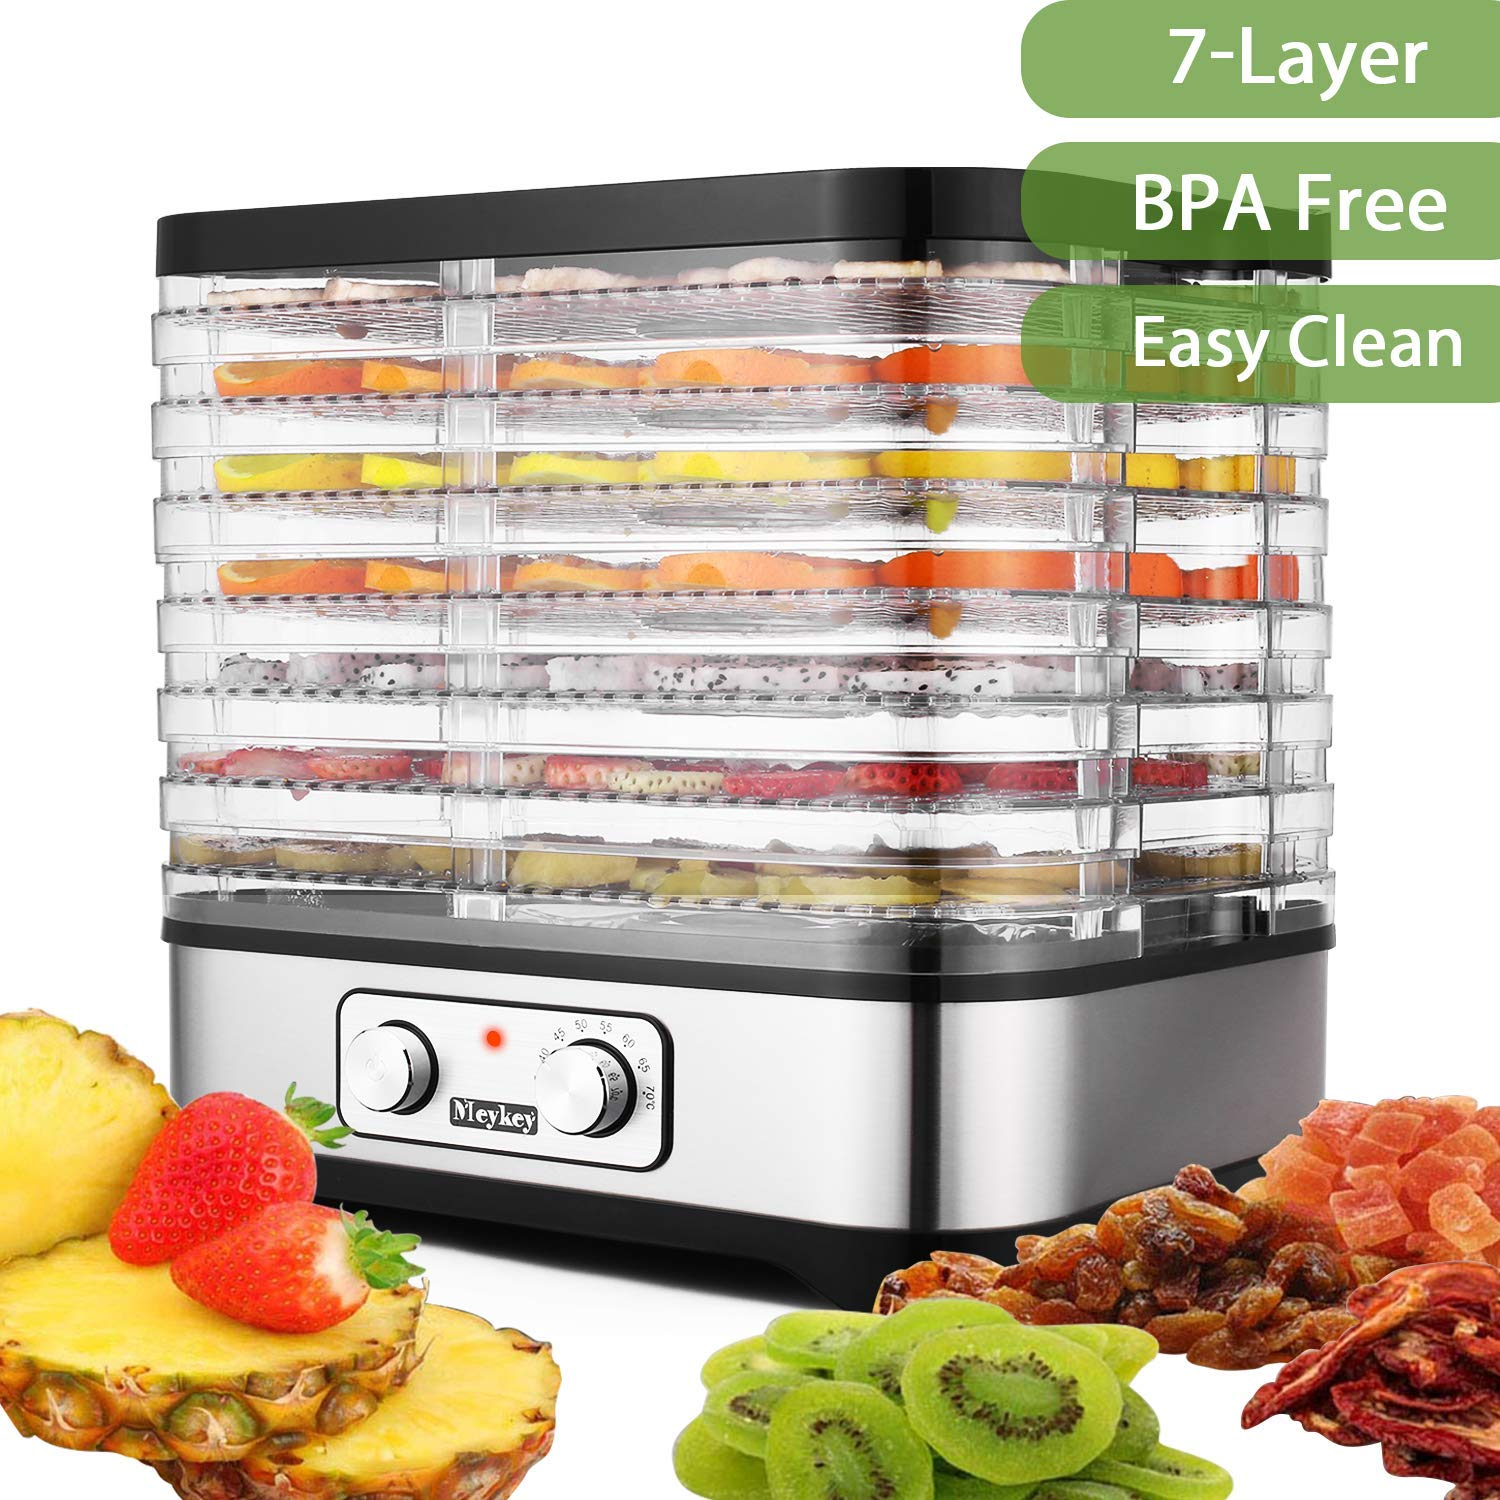 Food Dehydrator Machine, BPA Free Drying System with Nesting Tray – for Beef Jerky Preserving Wild Food and Fruit Vegetable Dryer in Home Kitchen